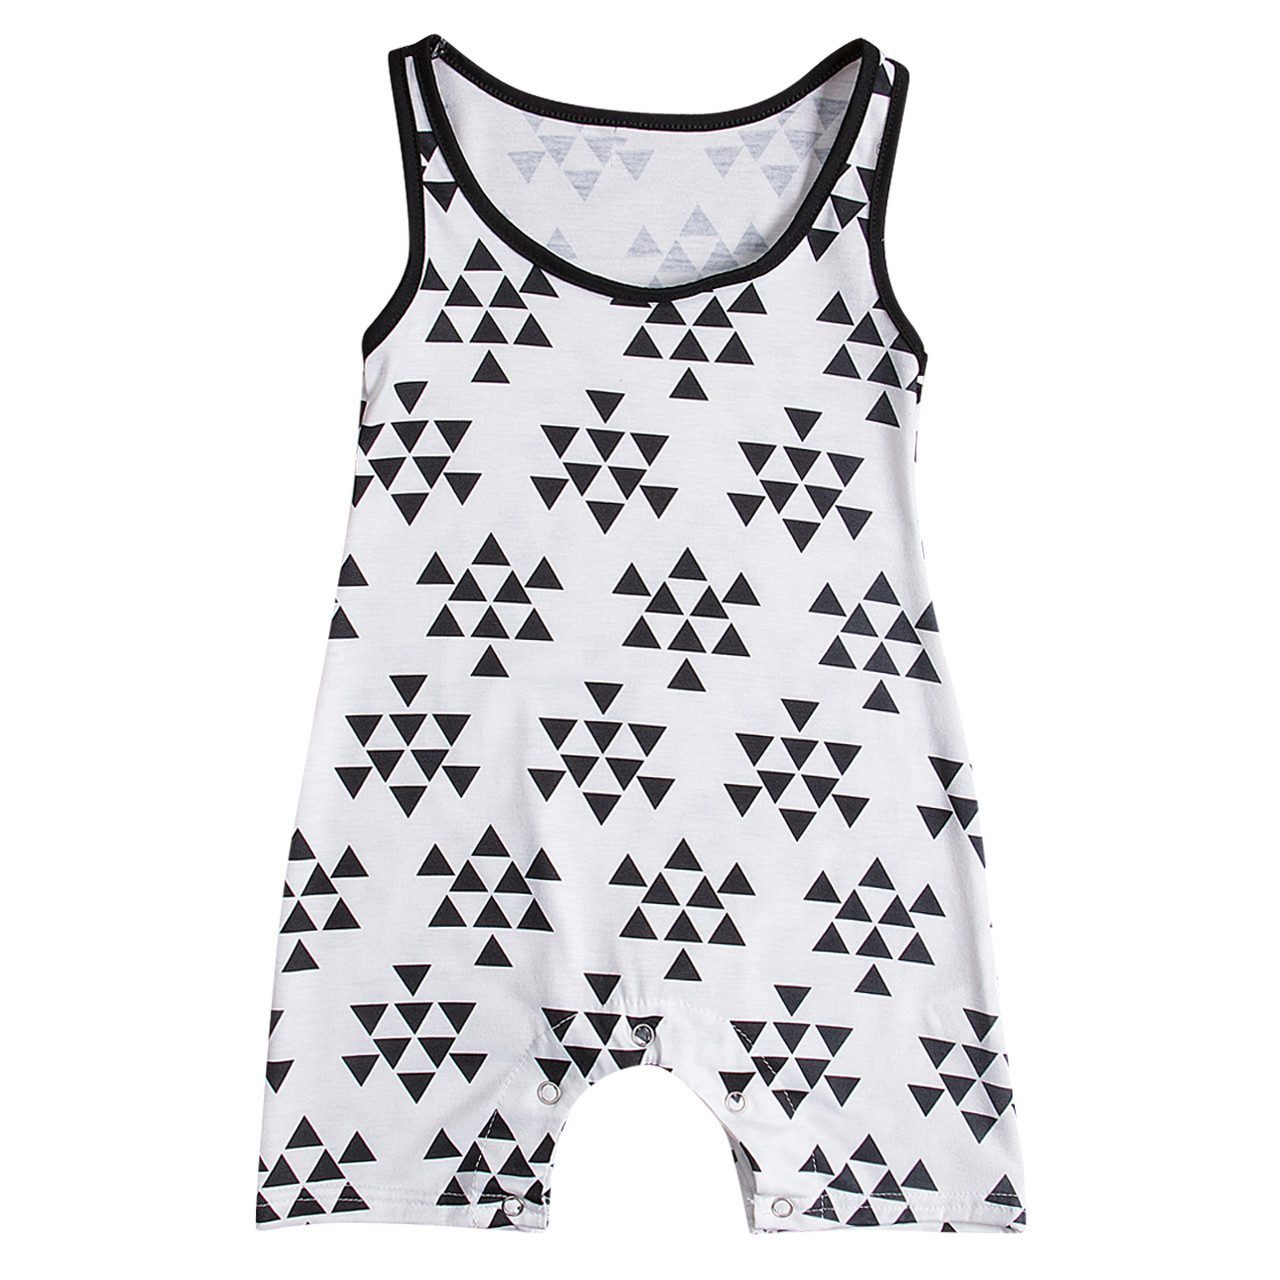 Newborn Baby Boy Clothes Print Sleeveless Romper Jumpsuit Toddler Boys Summer Cotton Sunsuit Outfit new arrival boy costumes rompers cotton newborn infant baby boys romper jumpsuit sunsuit clothes outfits